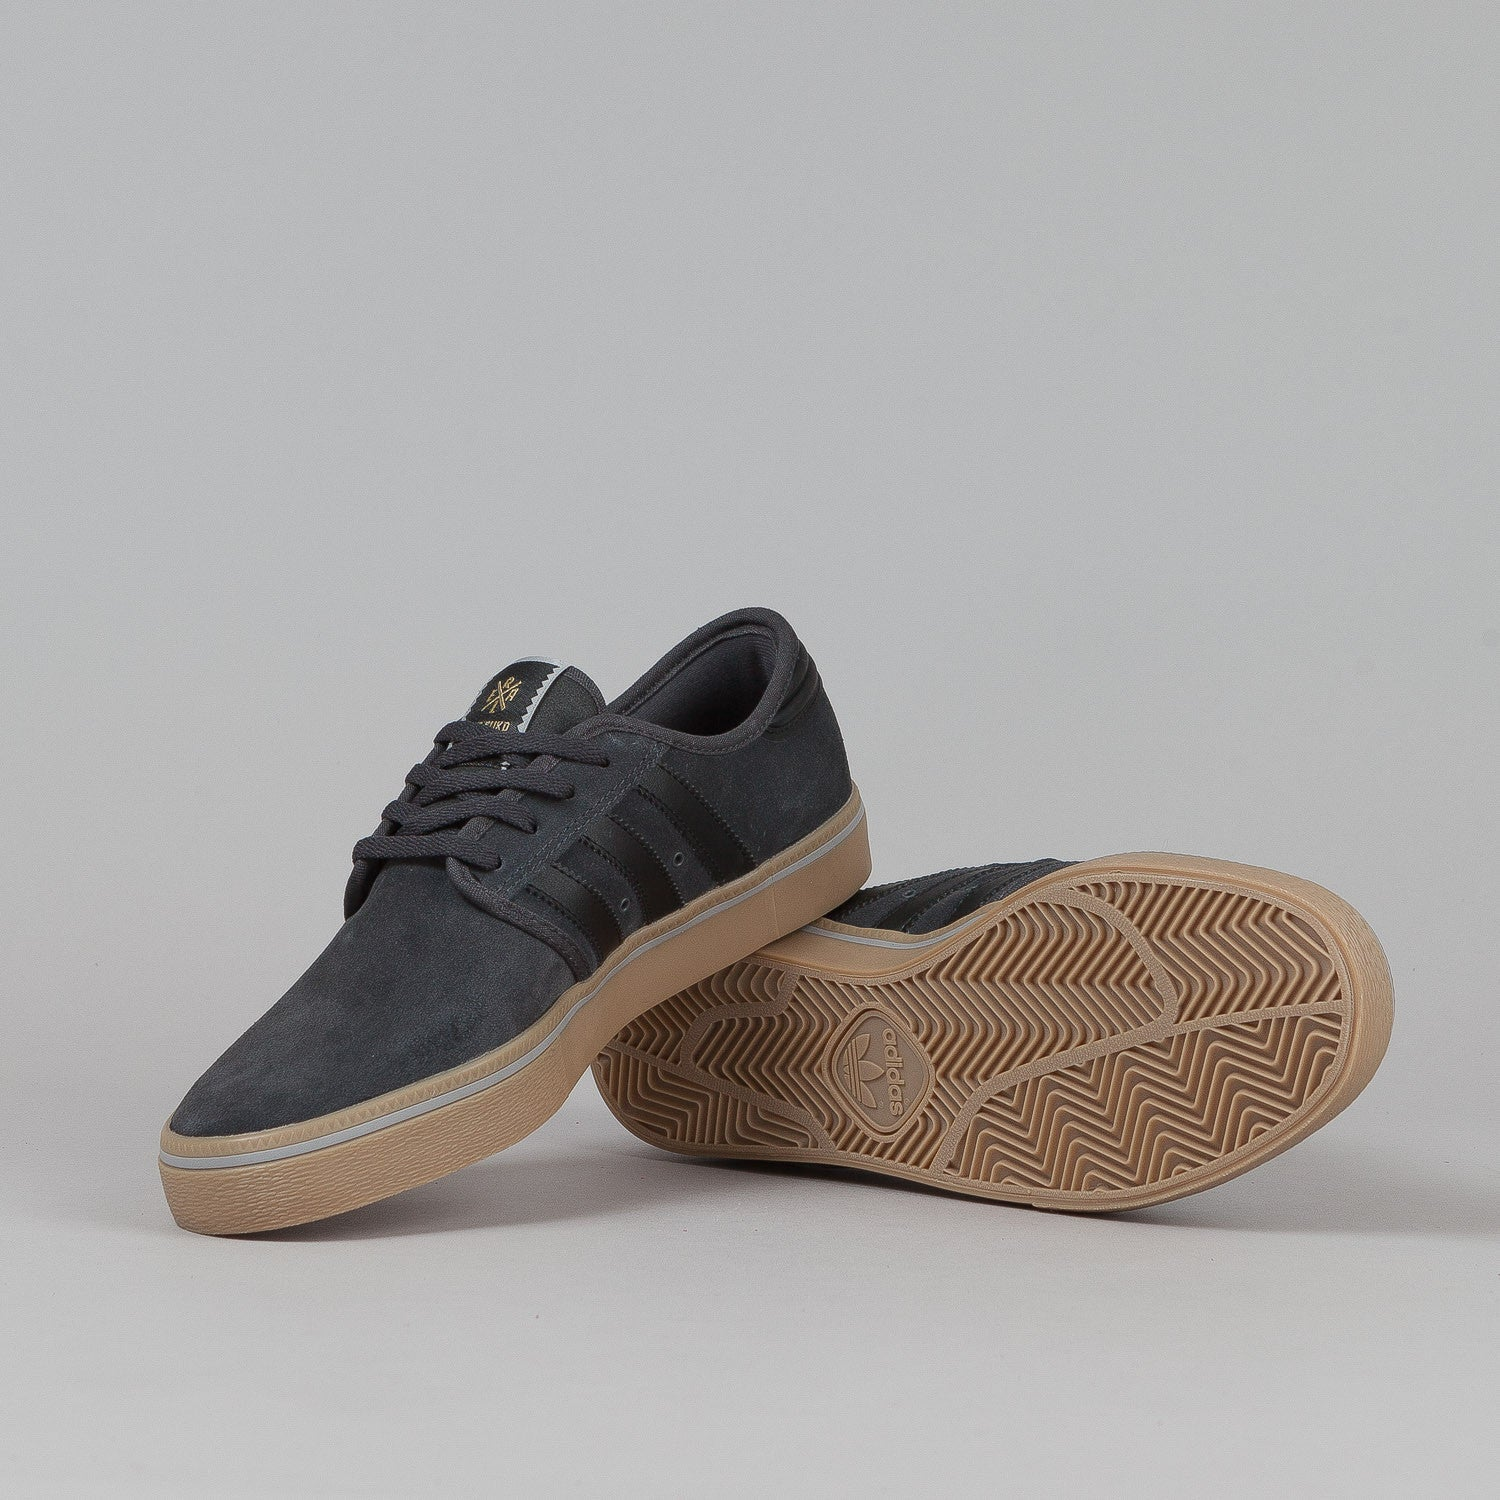 Adidas Seeley Adv Shoes - Grey / Core Black / Gum